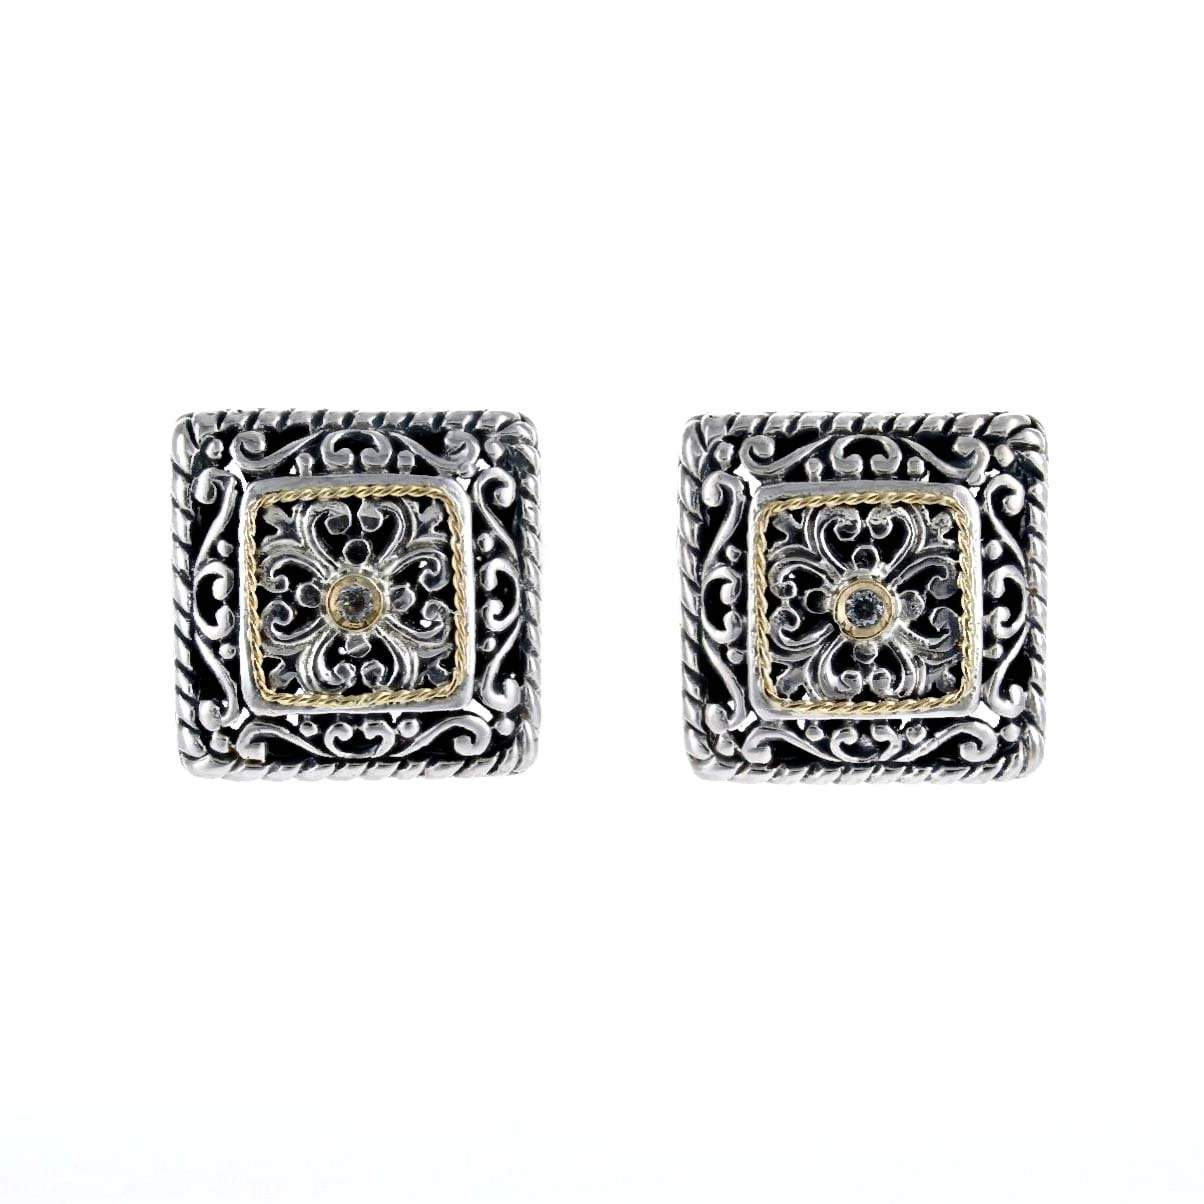 David Beck Bali Square Stud Earrings with Gold Detail